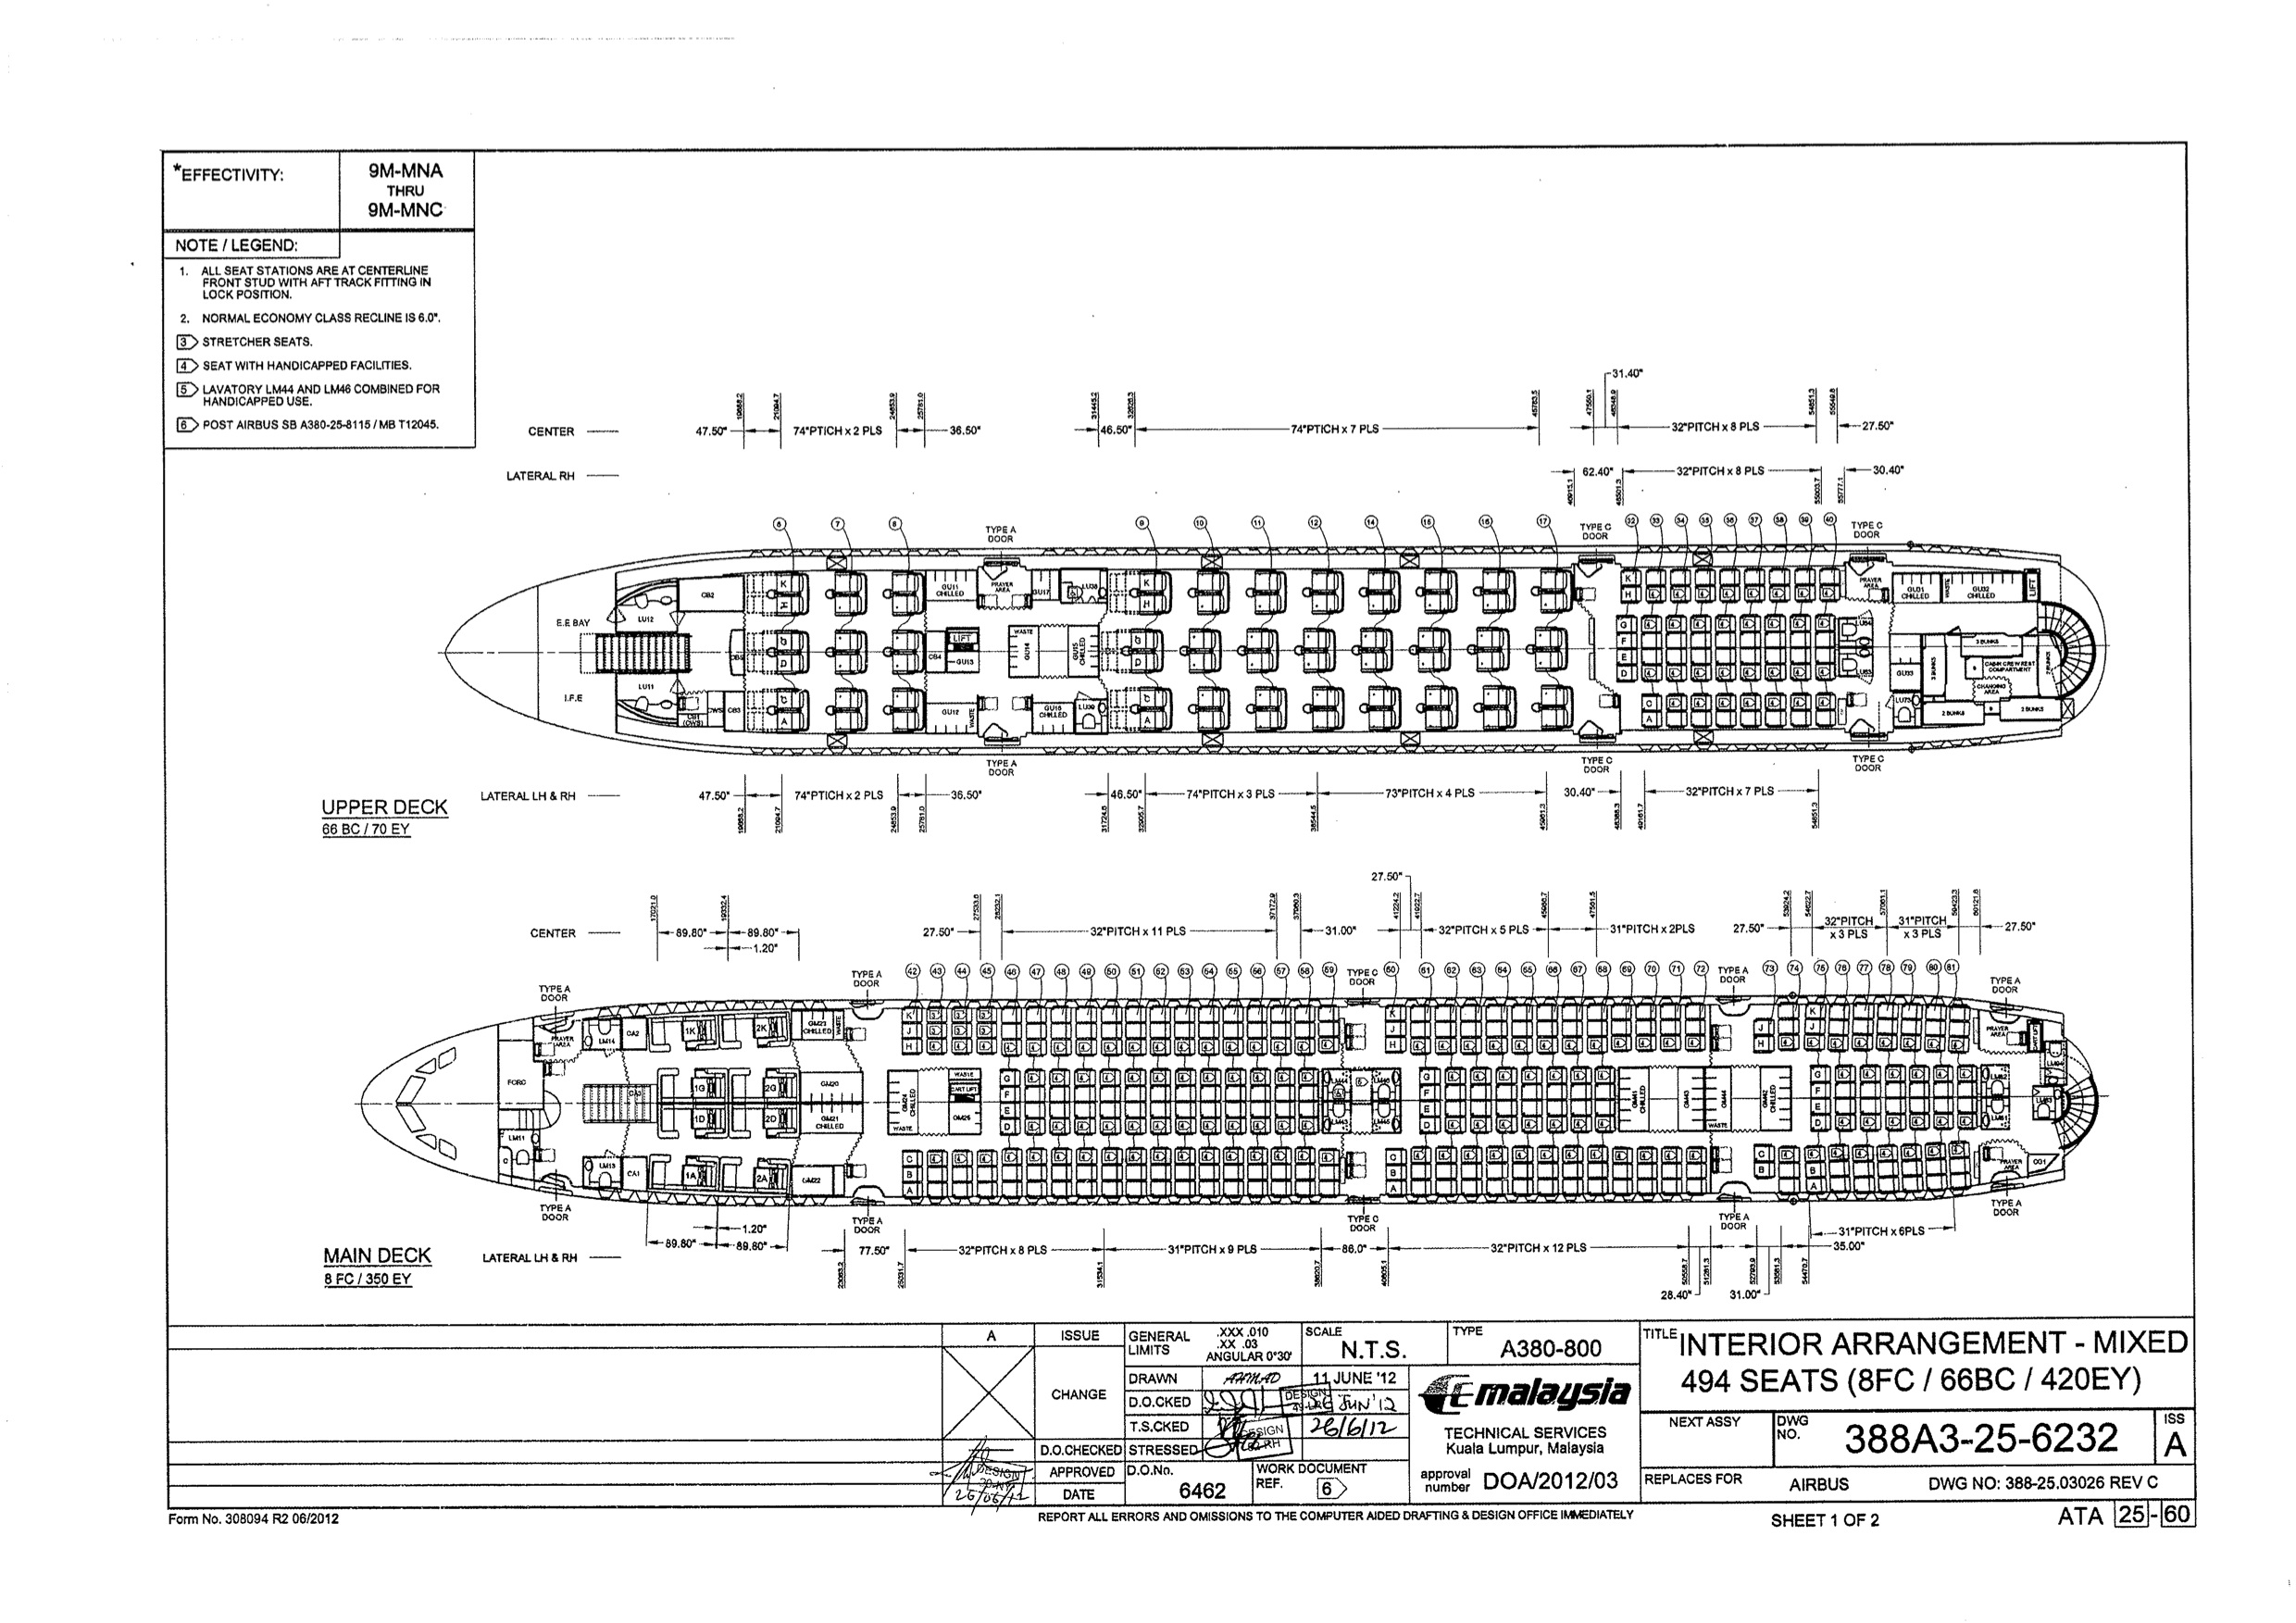 cabin plan a380 airbus a380 floor plan related keywords amp suggestions